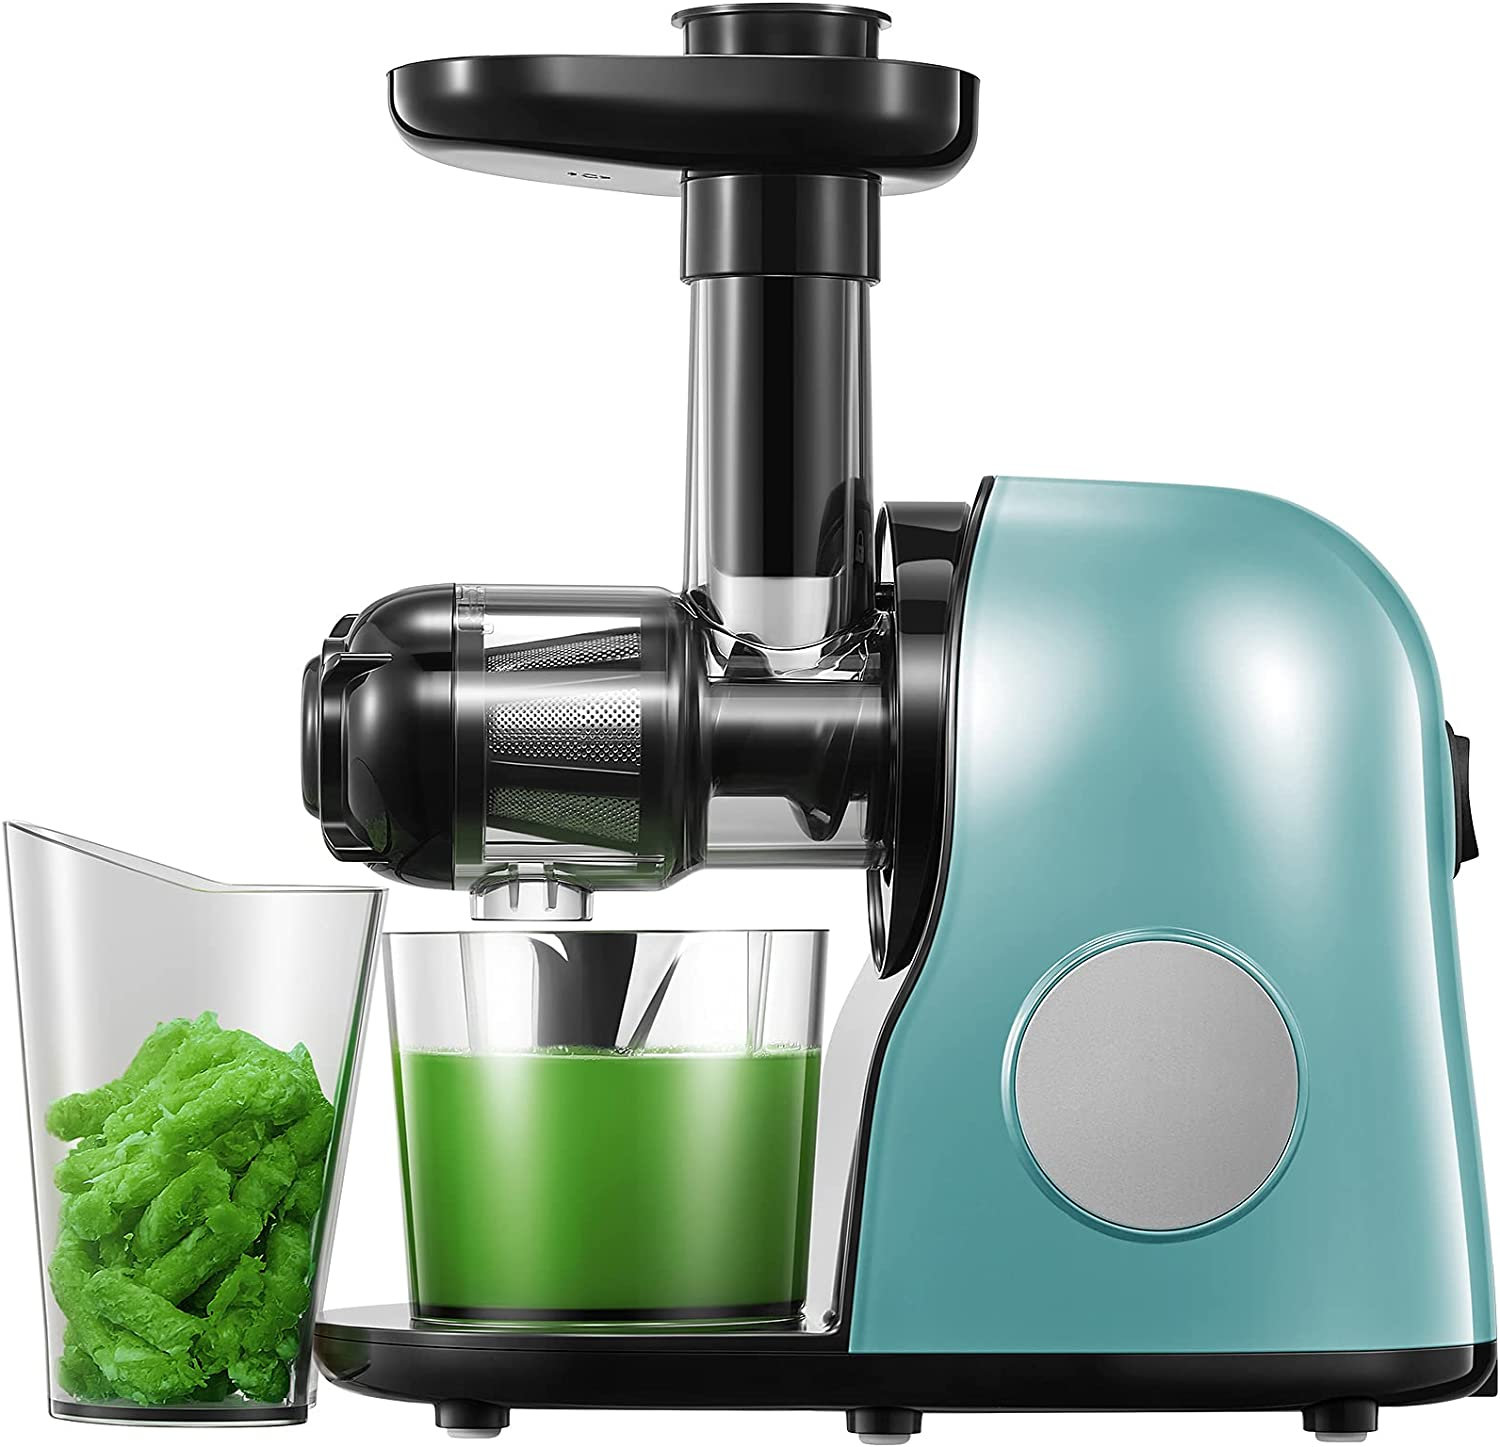 Juicer Machines Slow Masticating Extractor Clean gift to Our shop OFFers the best service Easy